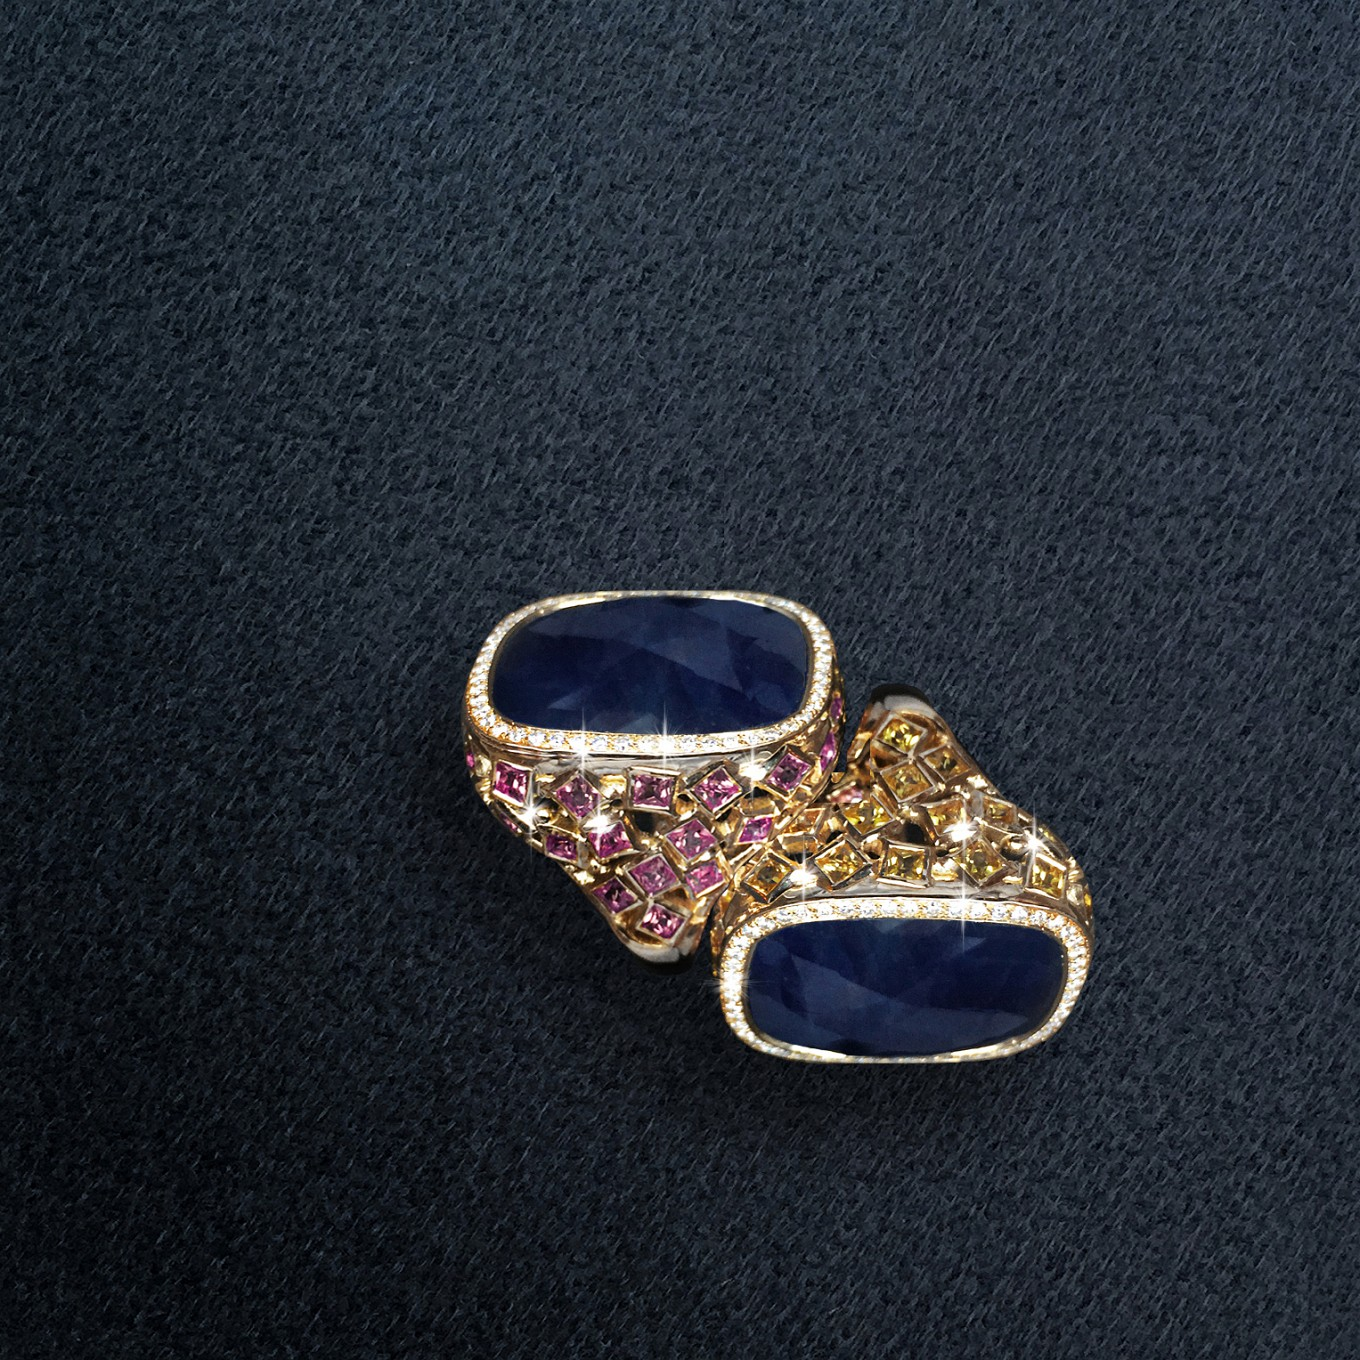 Rose cut blue sapphire rings with Yellow & Pink Sapphire square cuts in yellow gold